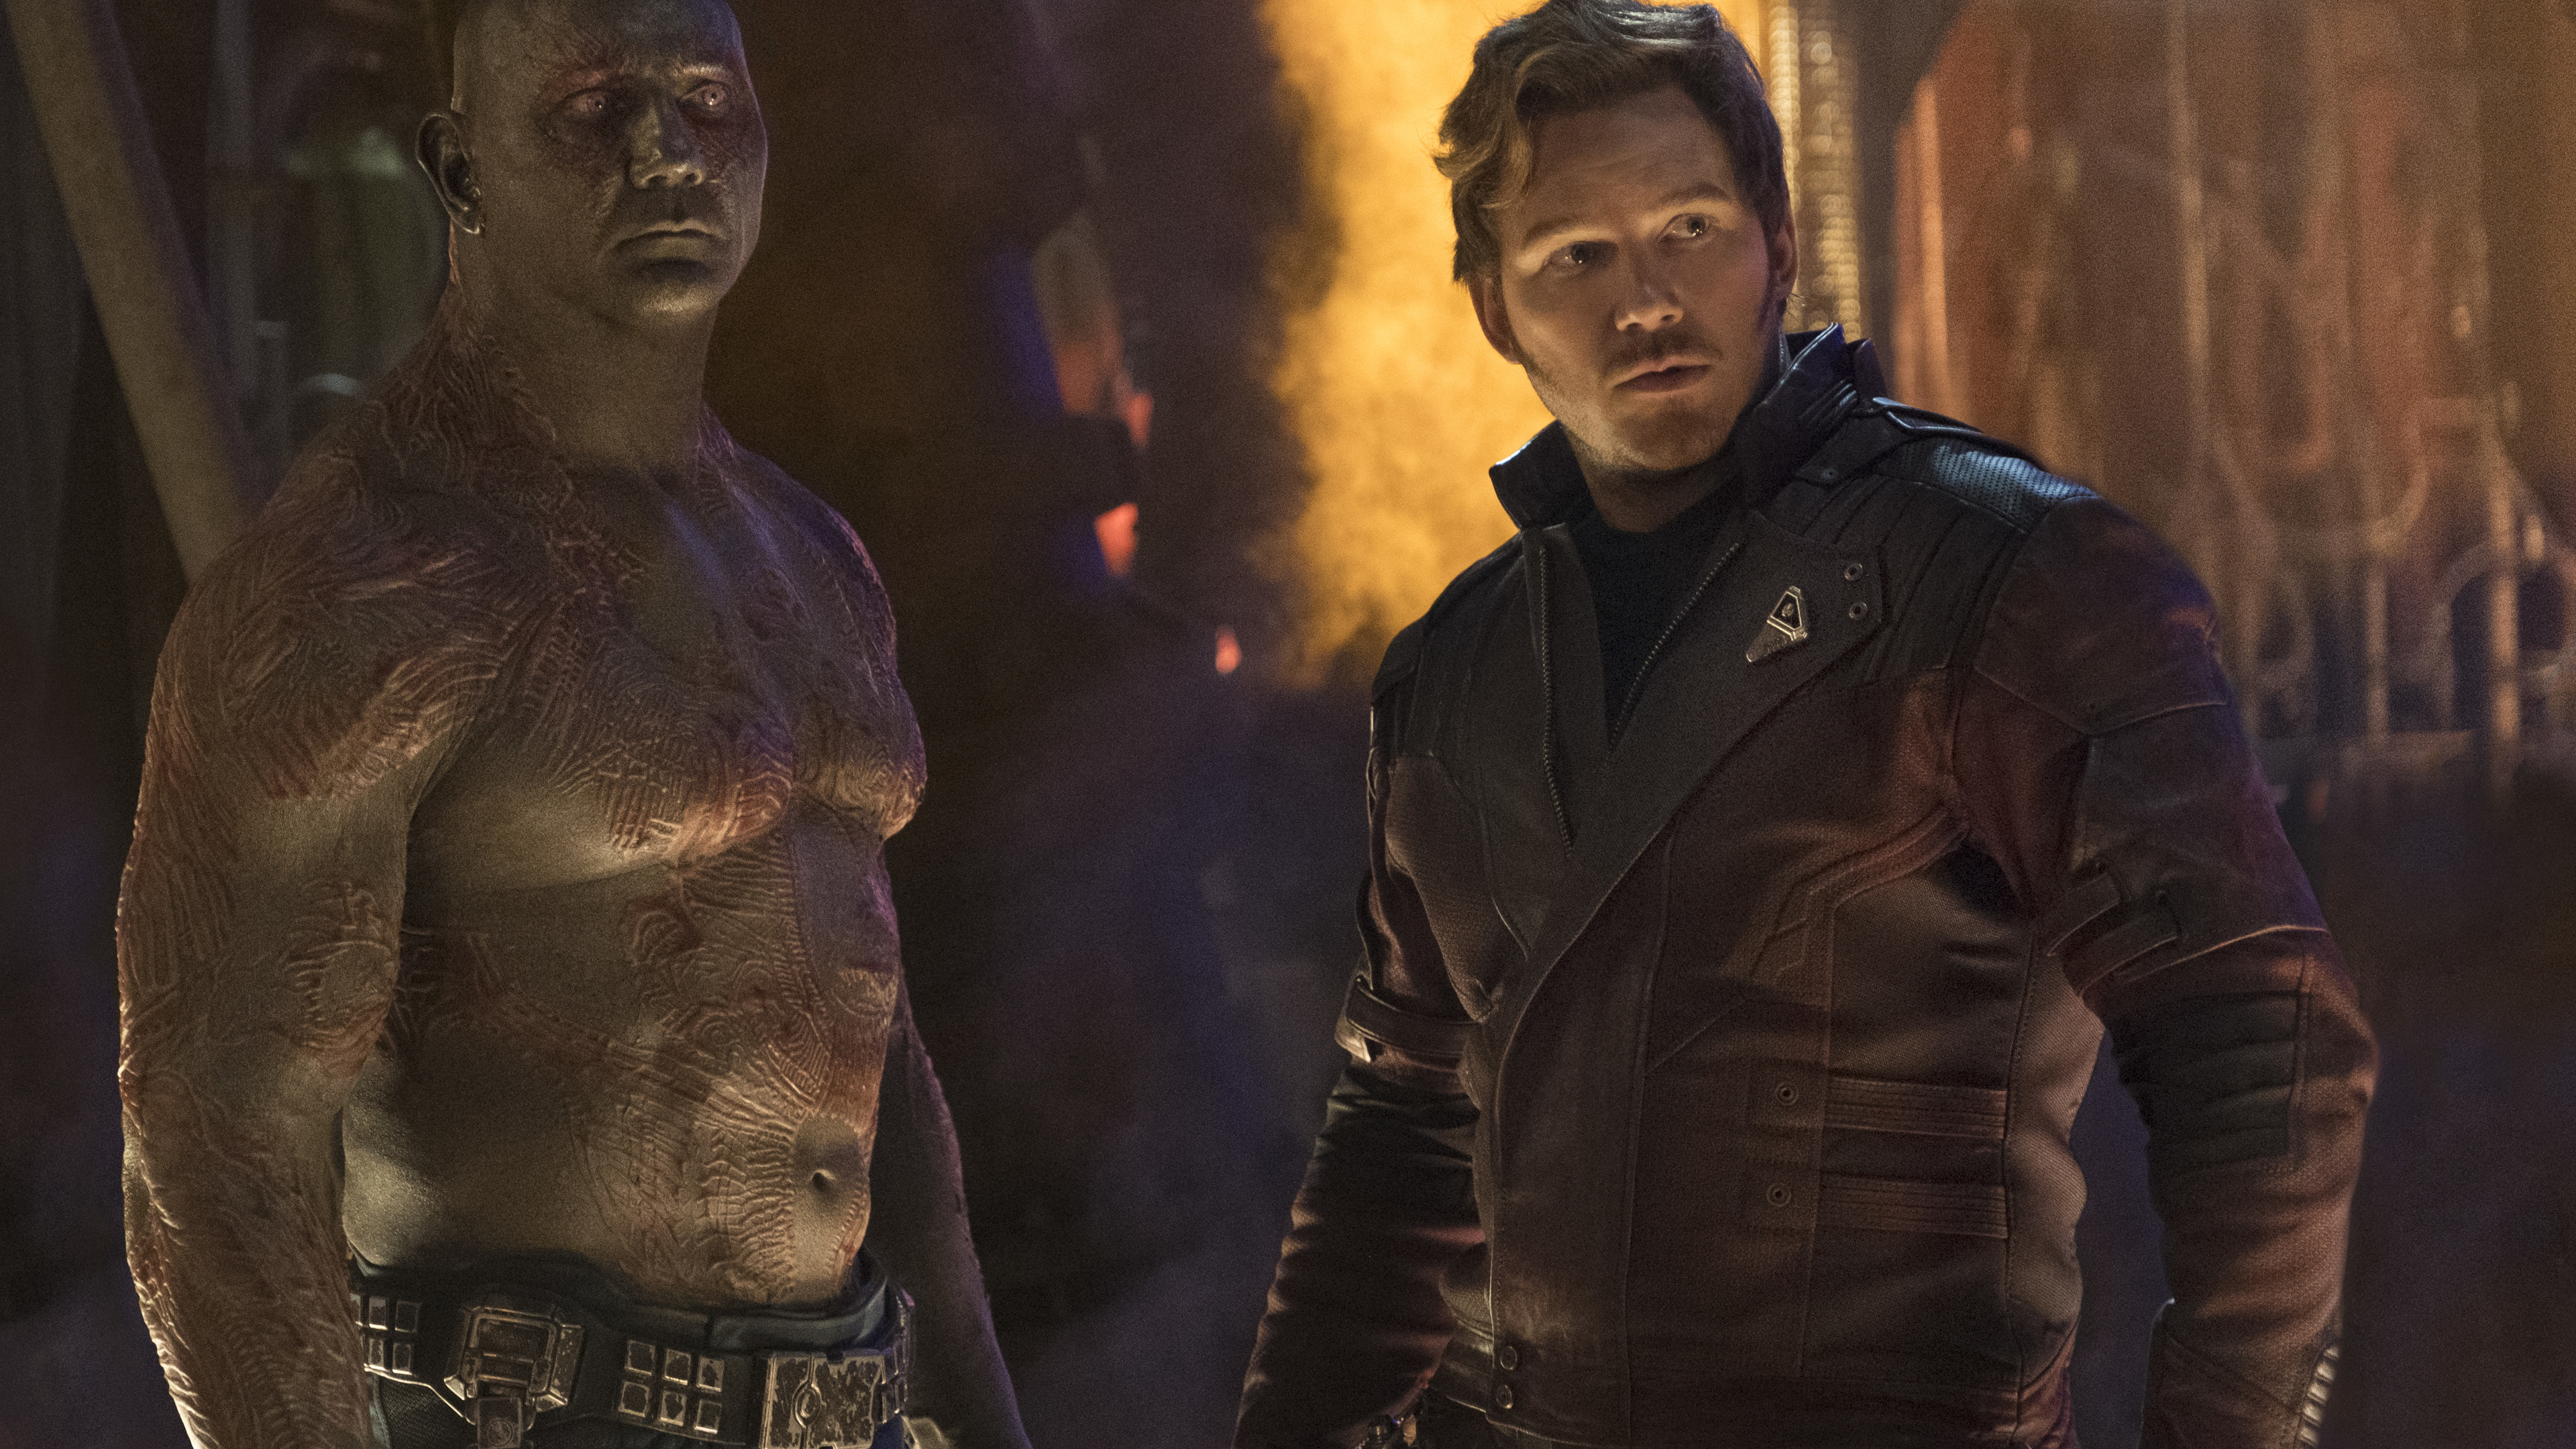 star lord and drax the destroyer in avengers infinity war 2018 4k 1537645707 - Star Lord And Drax The Destroyer In Avengers Infinity War 2018 4k - star lord wallpapers, movies wallpapers, hd-wallpapers, drax the destroyer wallpapers, avengers-infinity-war-wallpapers, 5k wallpapers, 4k-wallpapers, 2018-movies-wallpapers